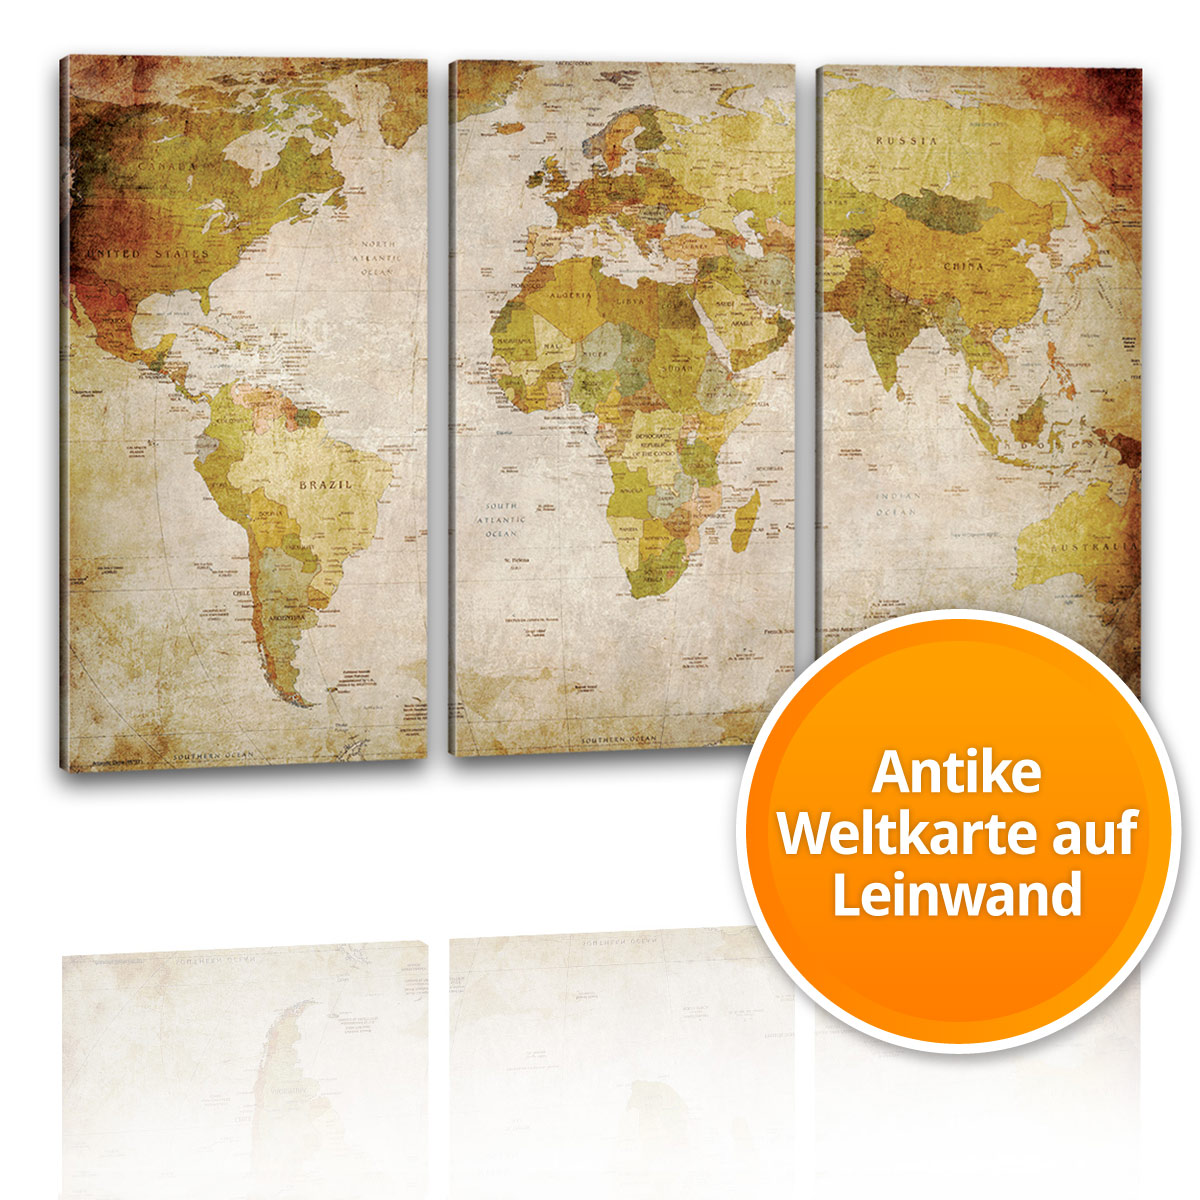 antike xxl weltkarte poster riesen landkarte retro vintage design wandbild deko ebay. Black Bedroom Furniture Sets. Home Design Ideas